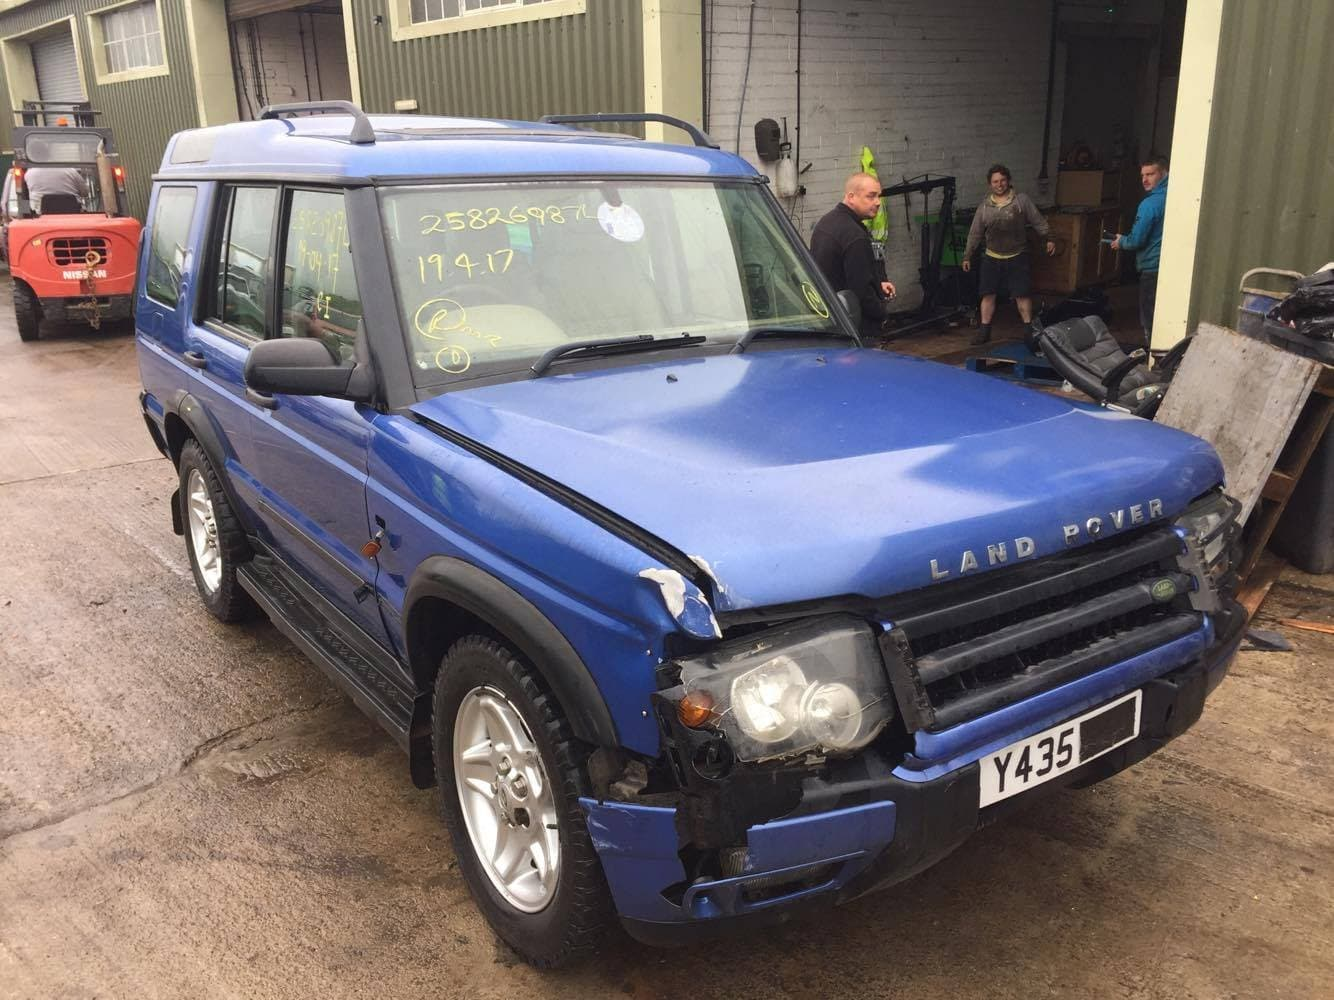 pictures landrover rant is com tigerdroppings discovery outdoor images land image it gtcarlot reliable rover